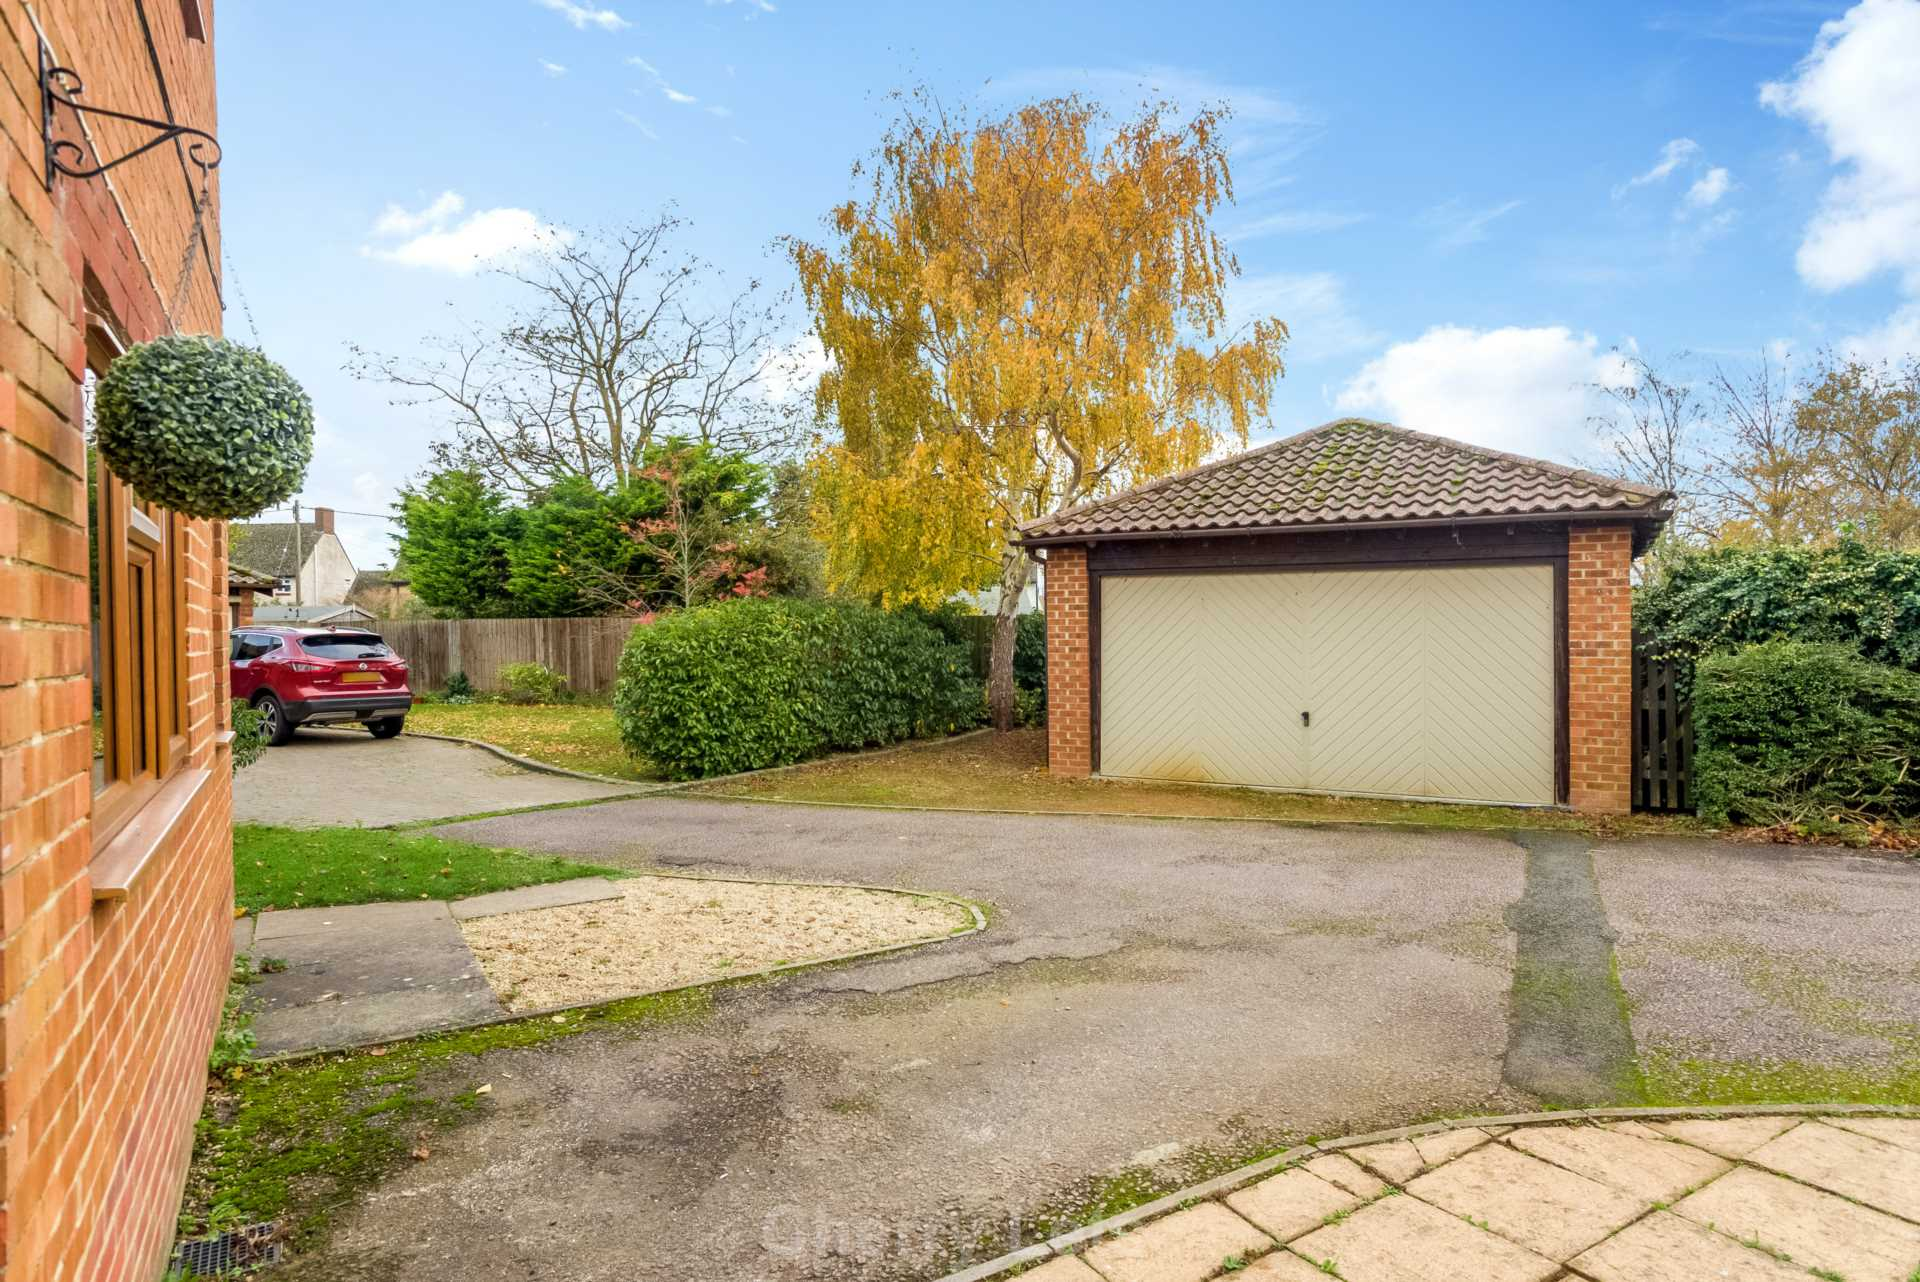 3 bed detached house to rent in Mill Close, Deddington, OX15 14